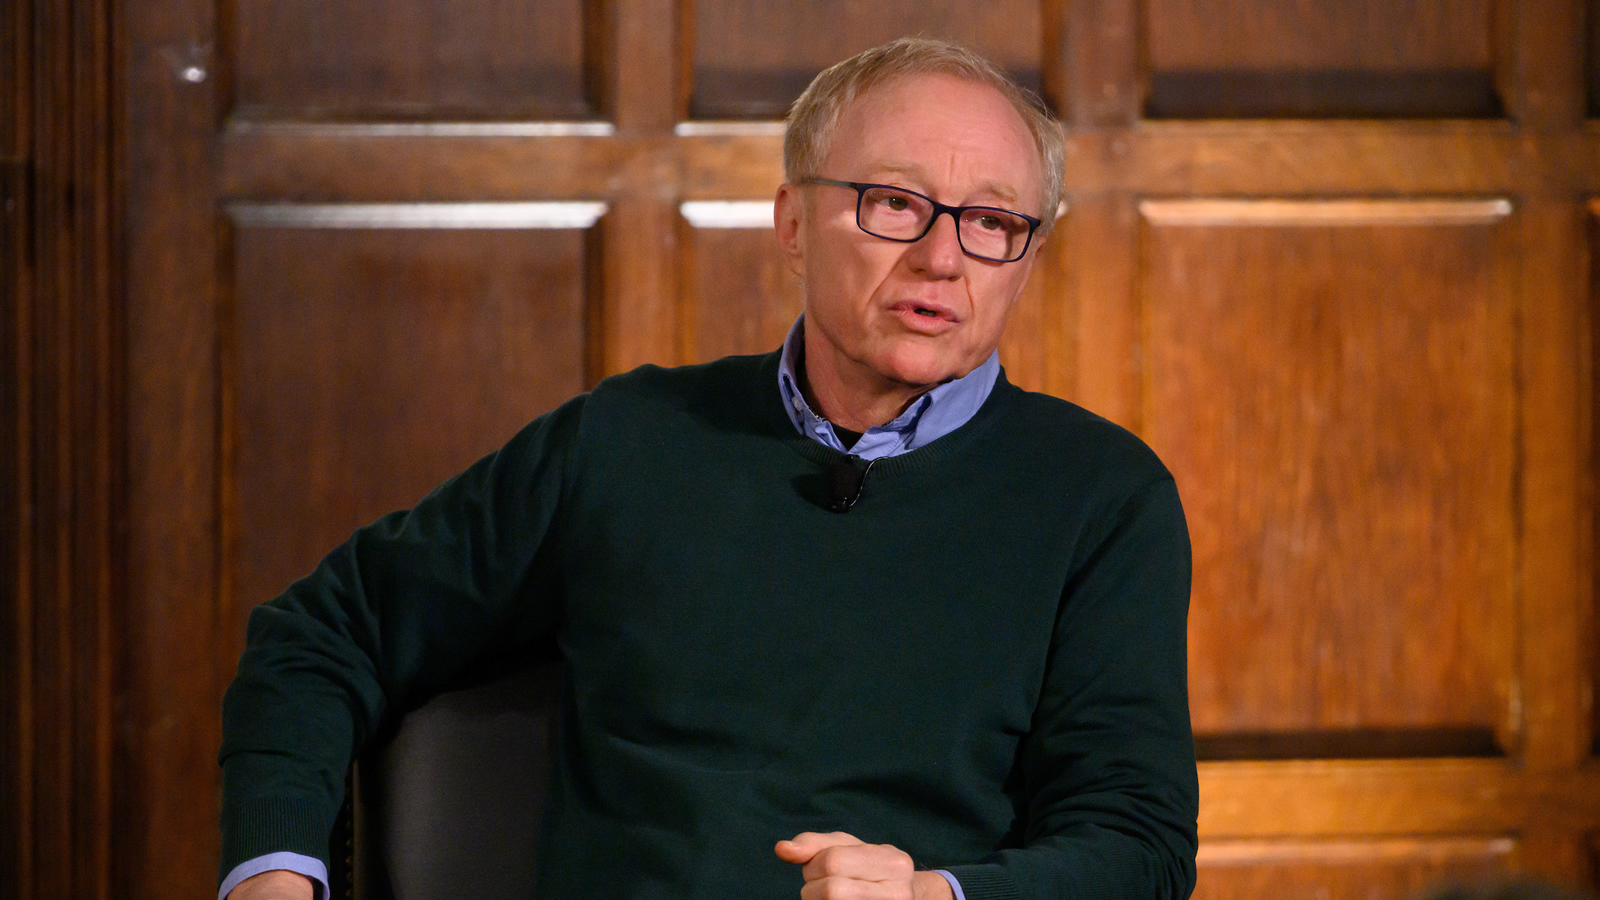 Author David Grossman